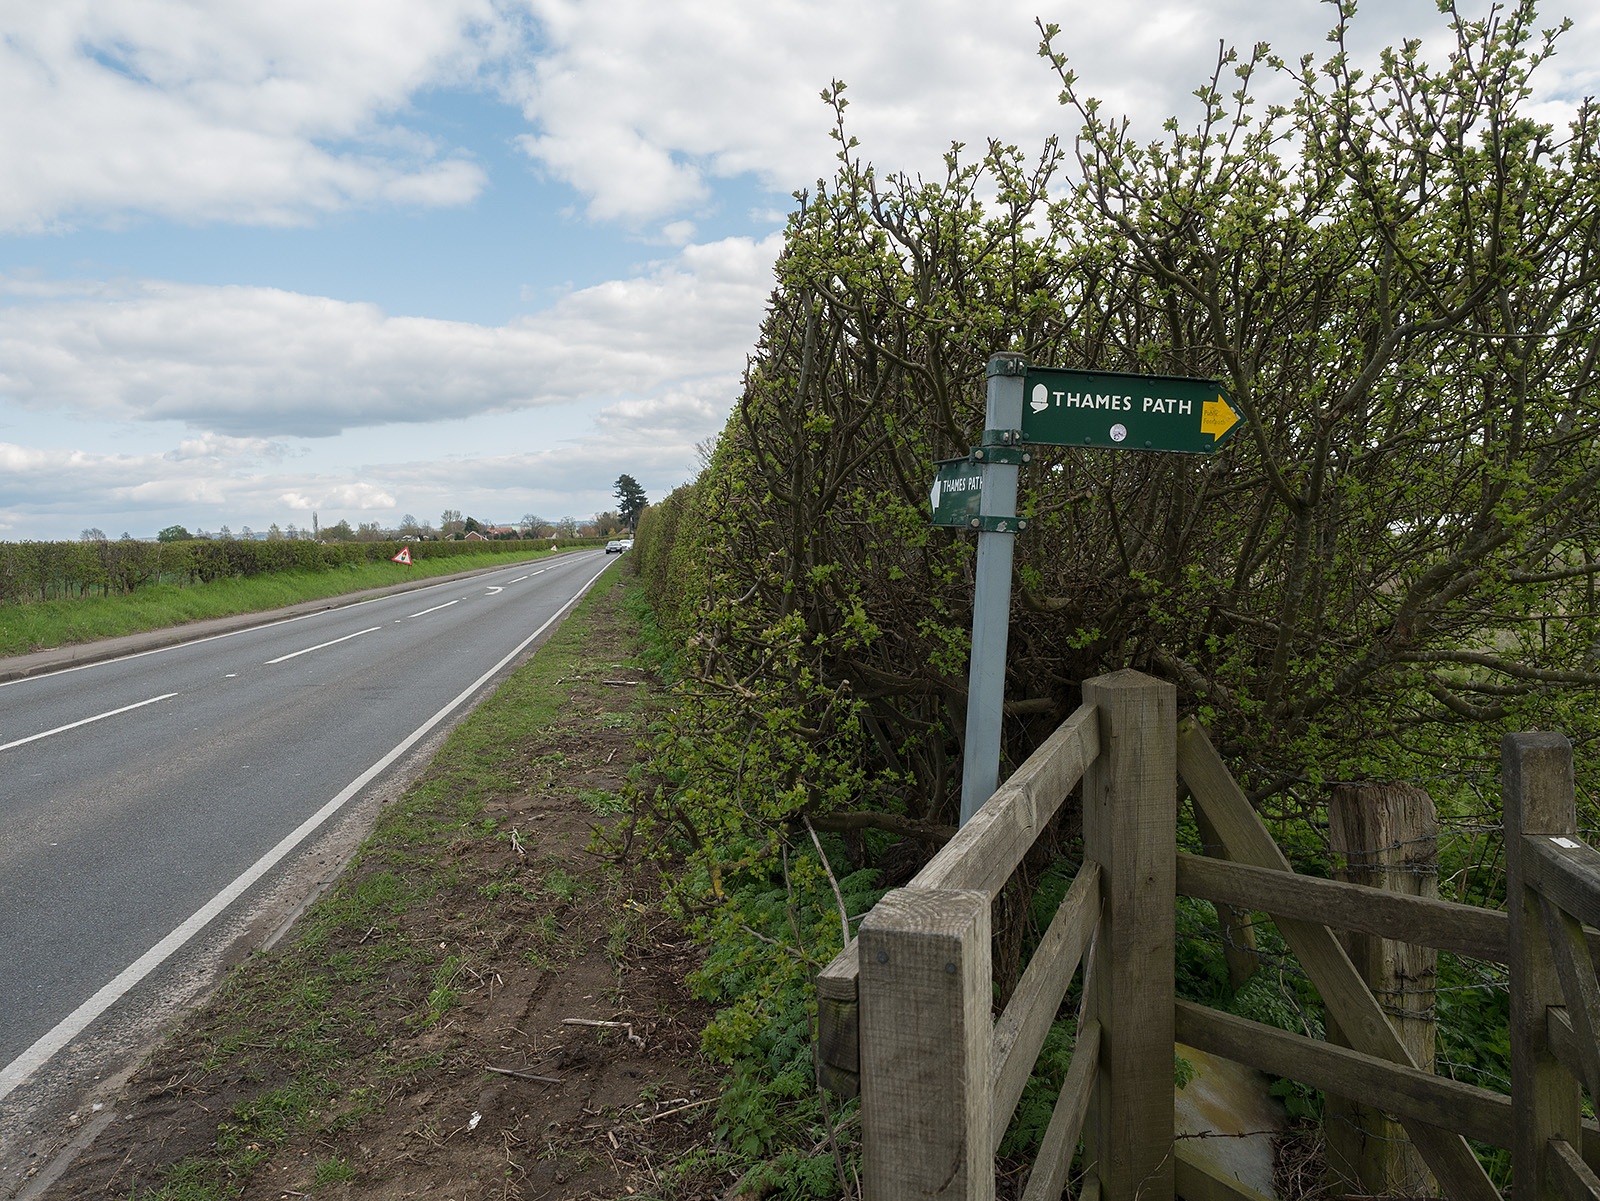 After a walk alongside the road, there is a gate into a field, as the path returns towards the riverside.